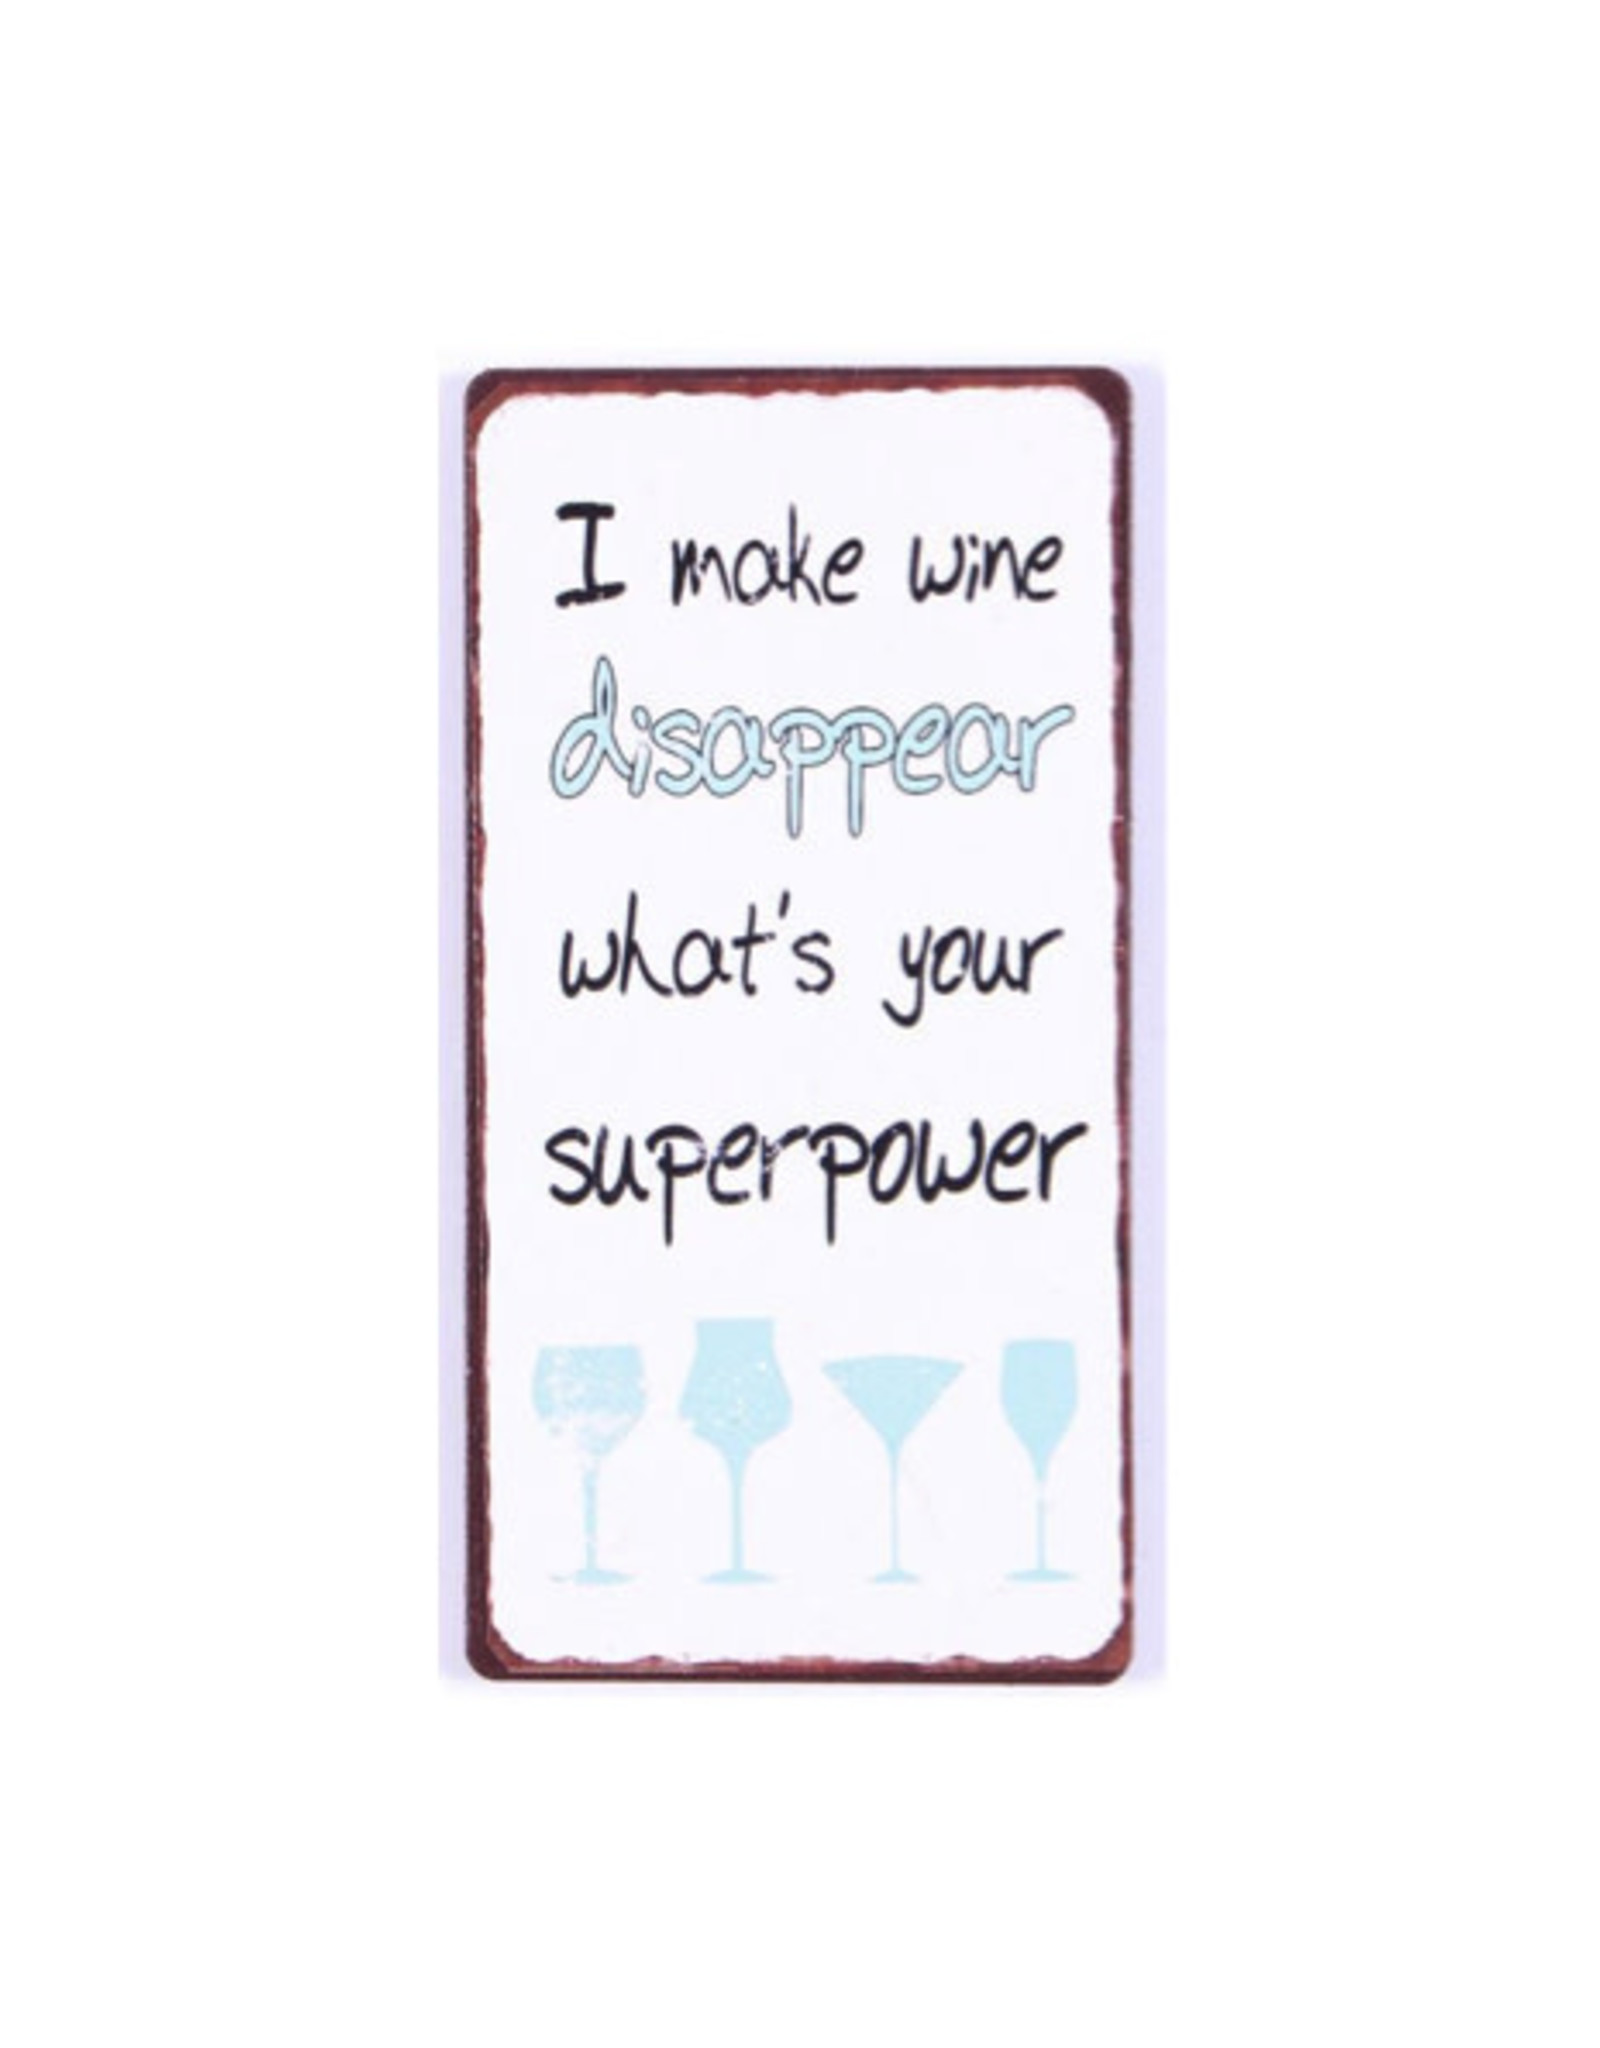 magnet with text: I make wine disappear. What's..